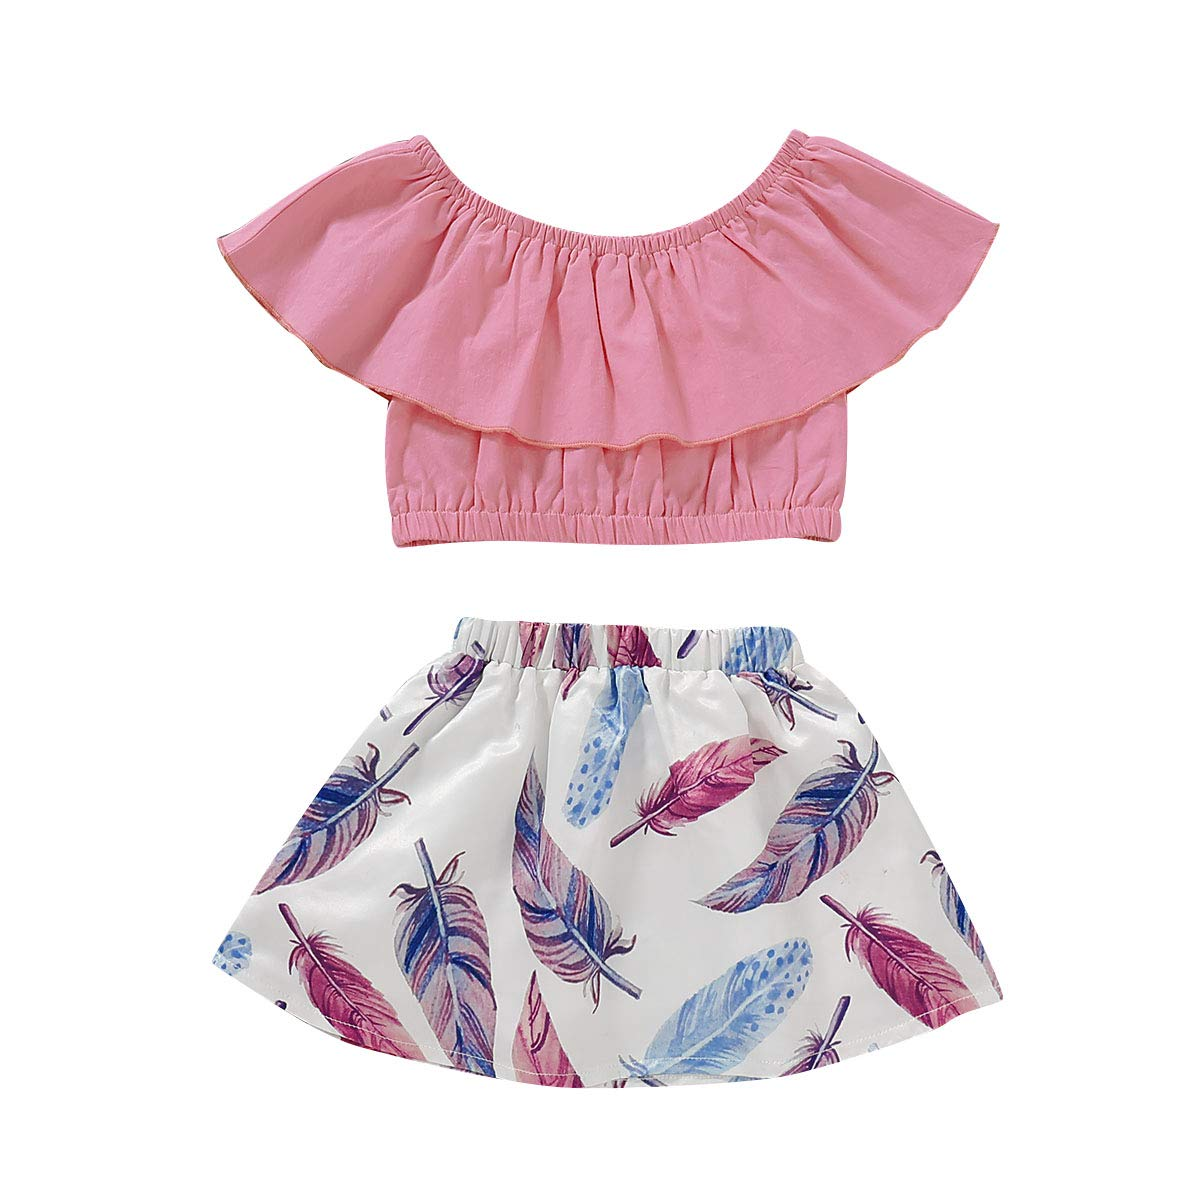 MOLYHUA Baby Girls Outfits, 2Pcs Off-Shoulder Tops + Floral Print Skirt Set